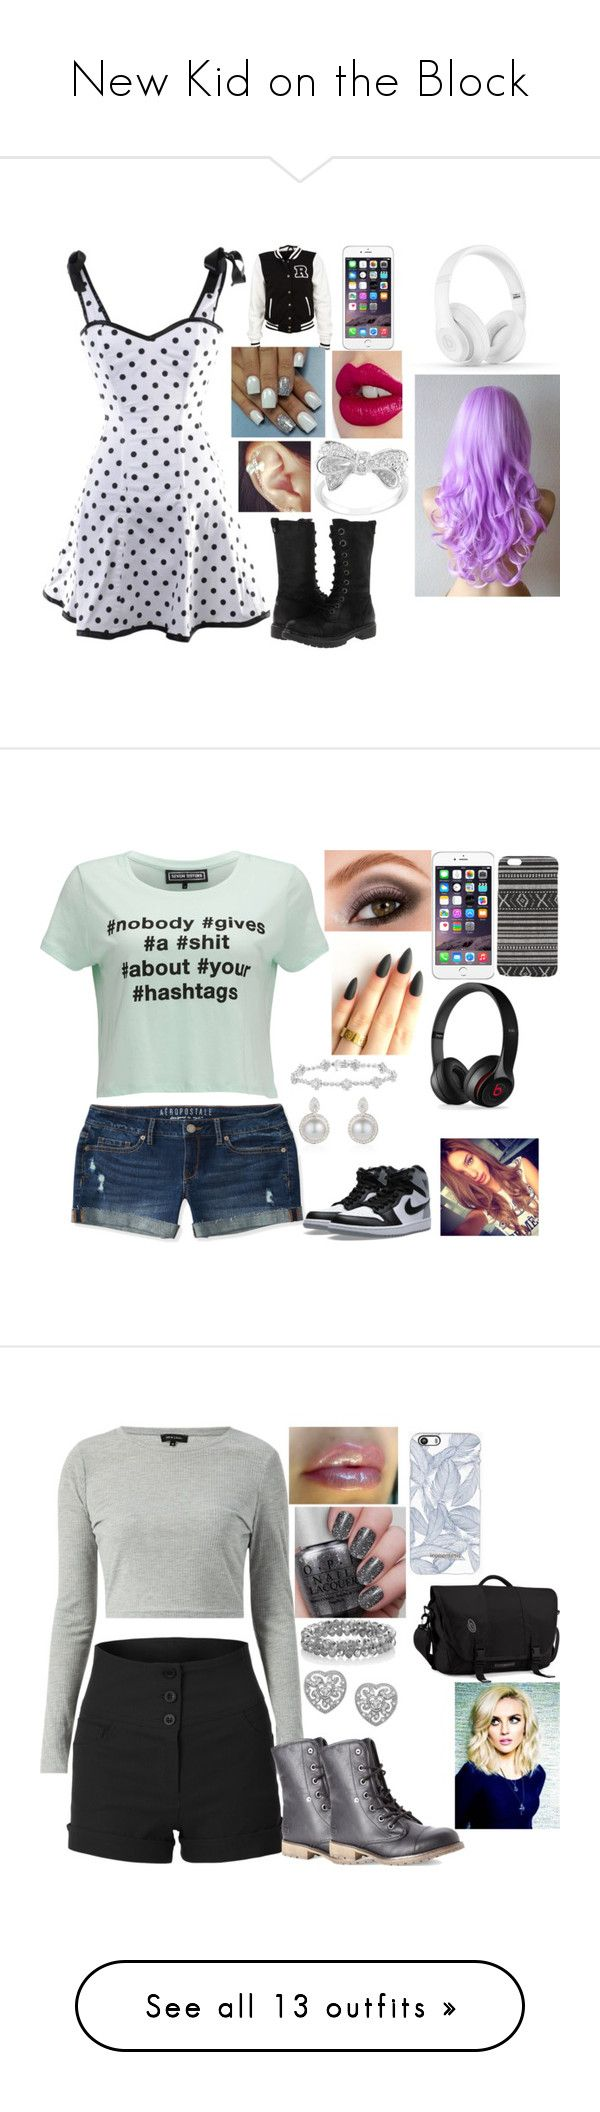 """""""New Kid on the Block"""" by kiara-fleming ❤ liked on Polyvore featuring BC Footwear, Charlotte Tilbury, Beats by Dr. Dre, Aéropostale, NIKE, Avon, With Love From CA, Black Apple, Dirty Laundry and The Limited"""